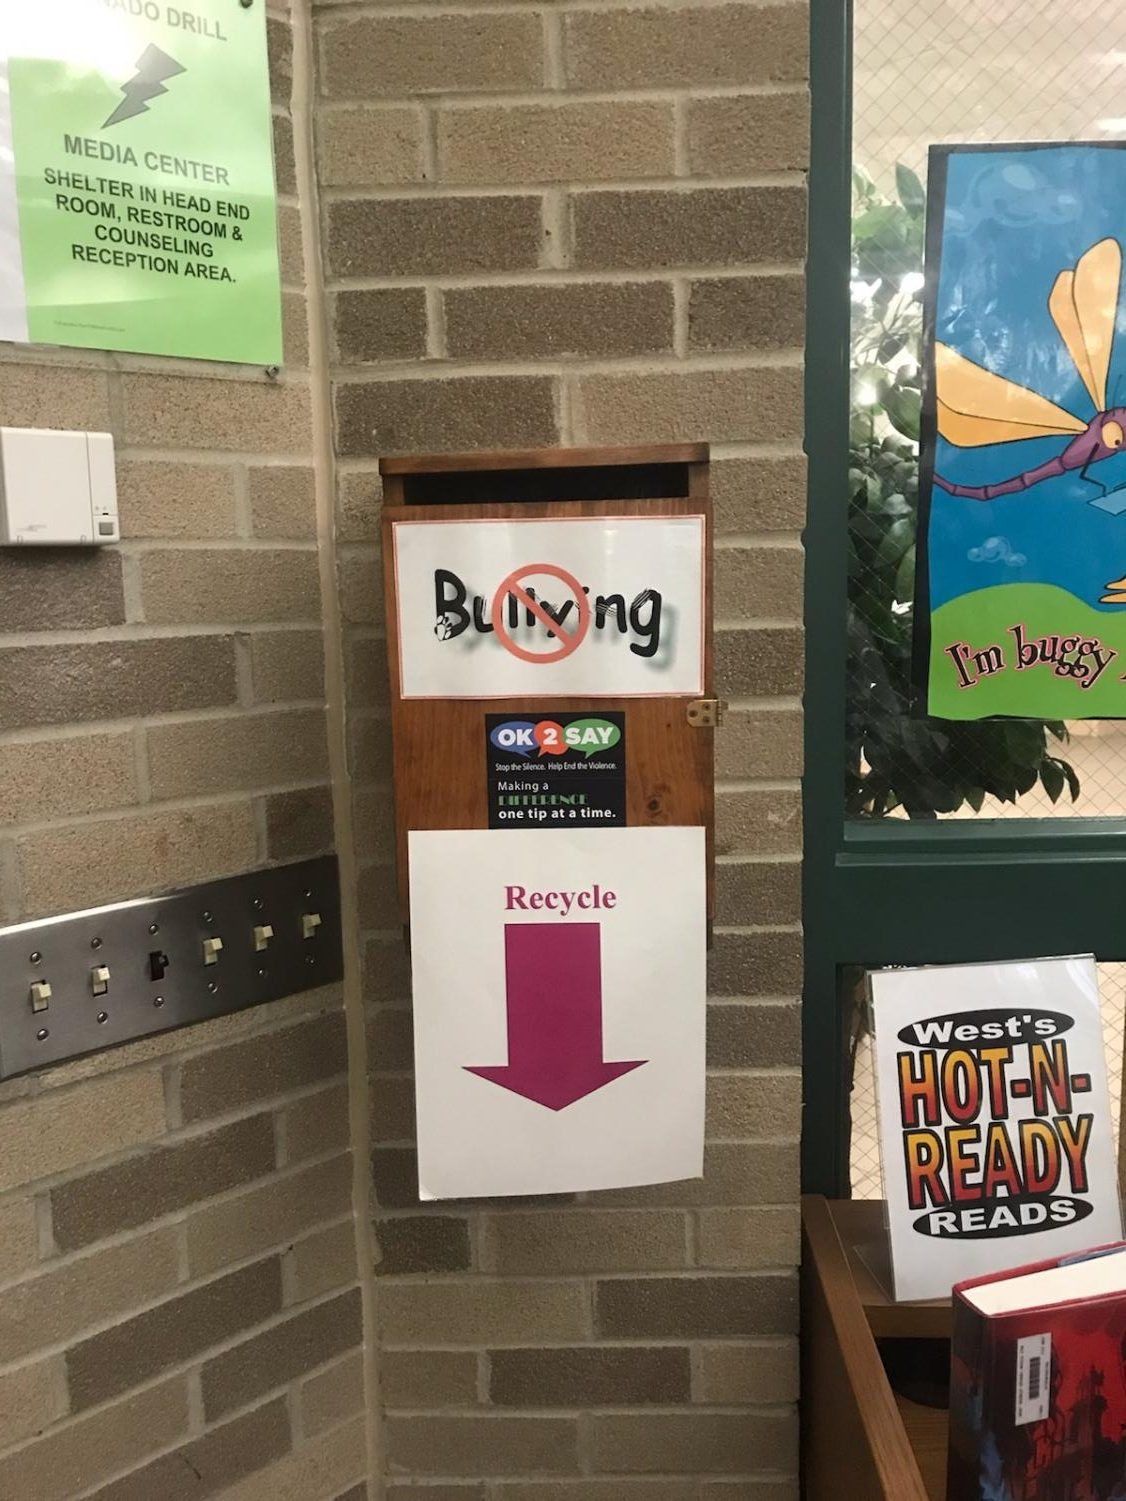 Bully box in the Media Center at West.